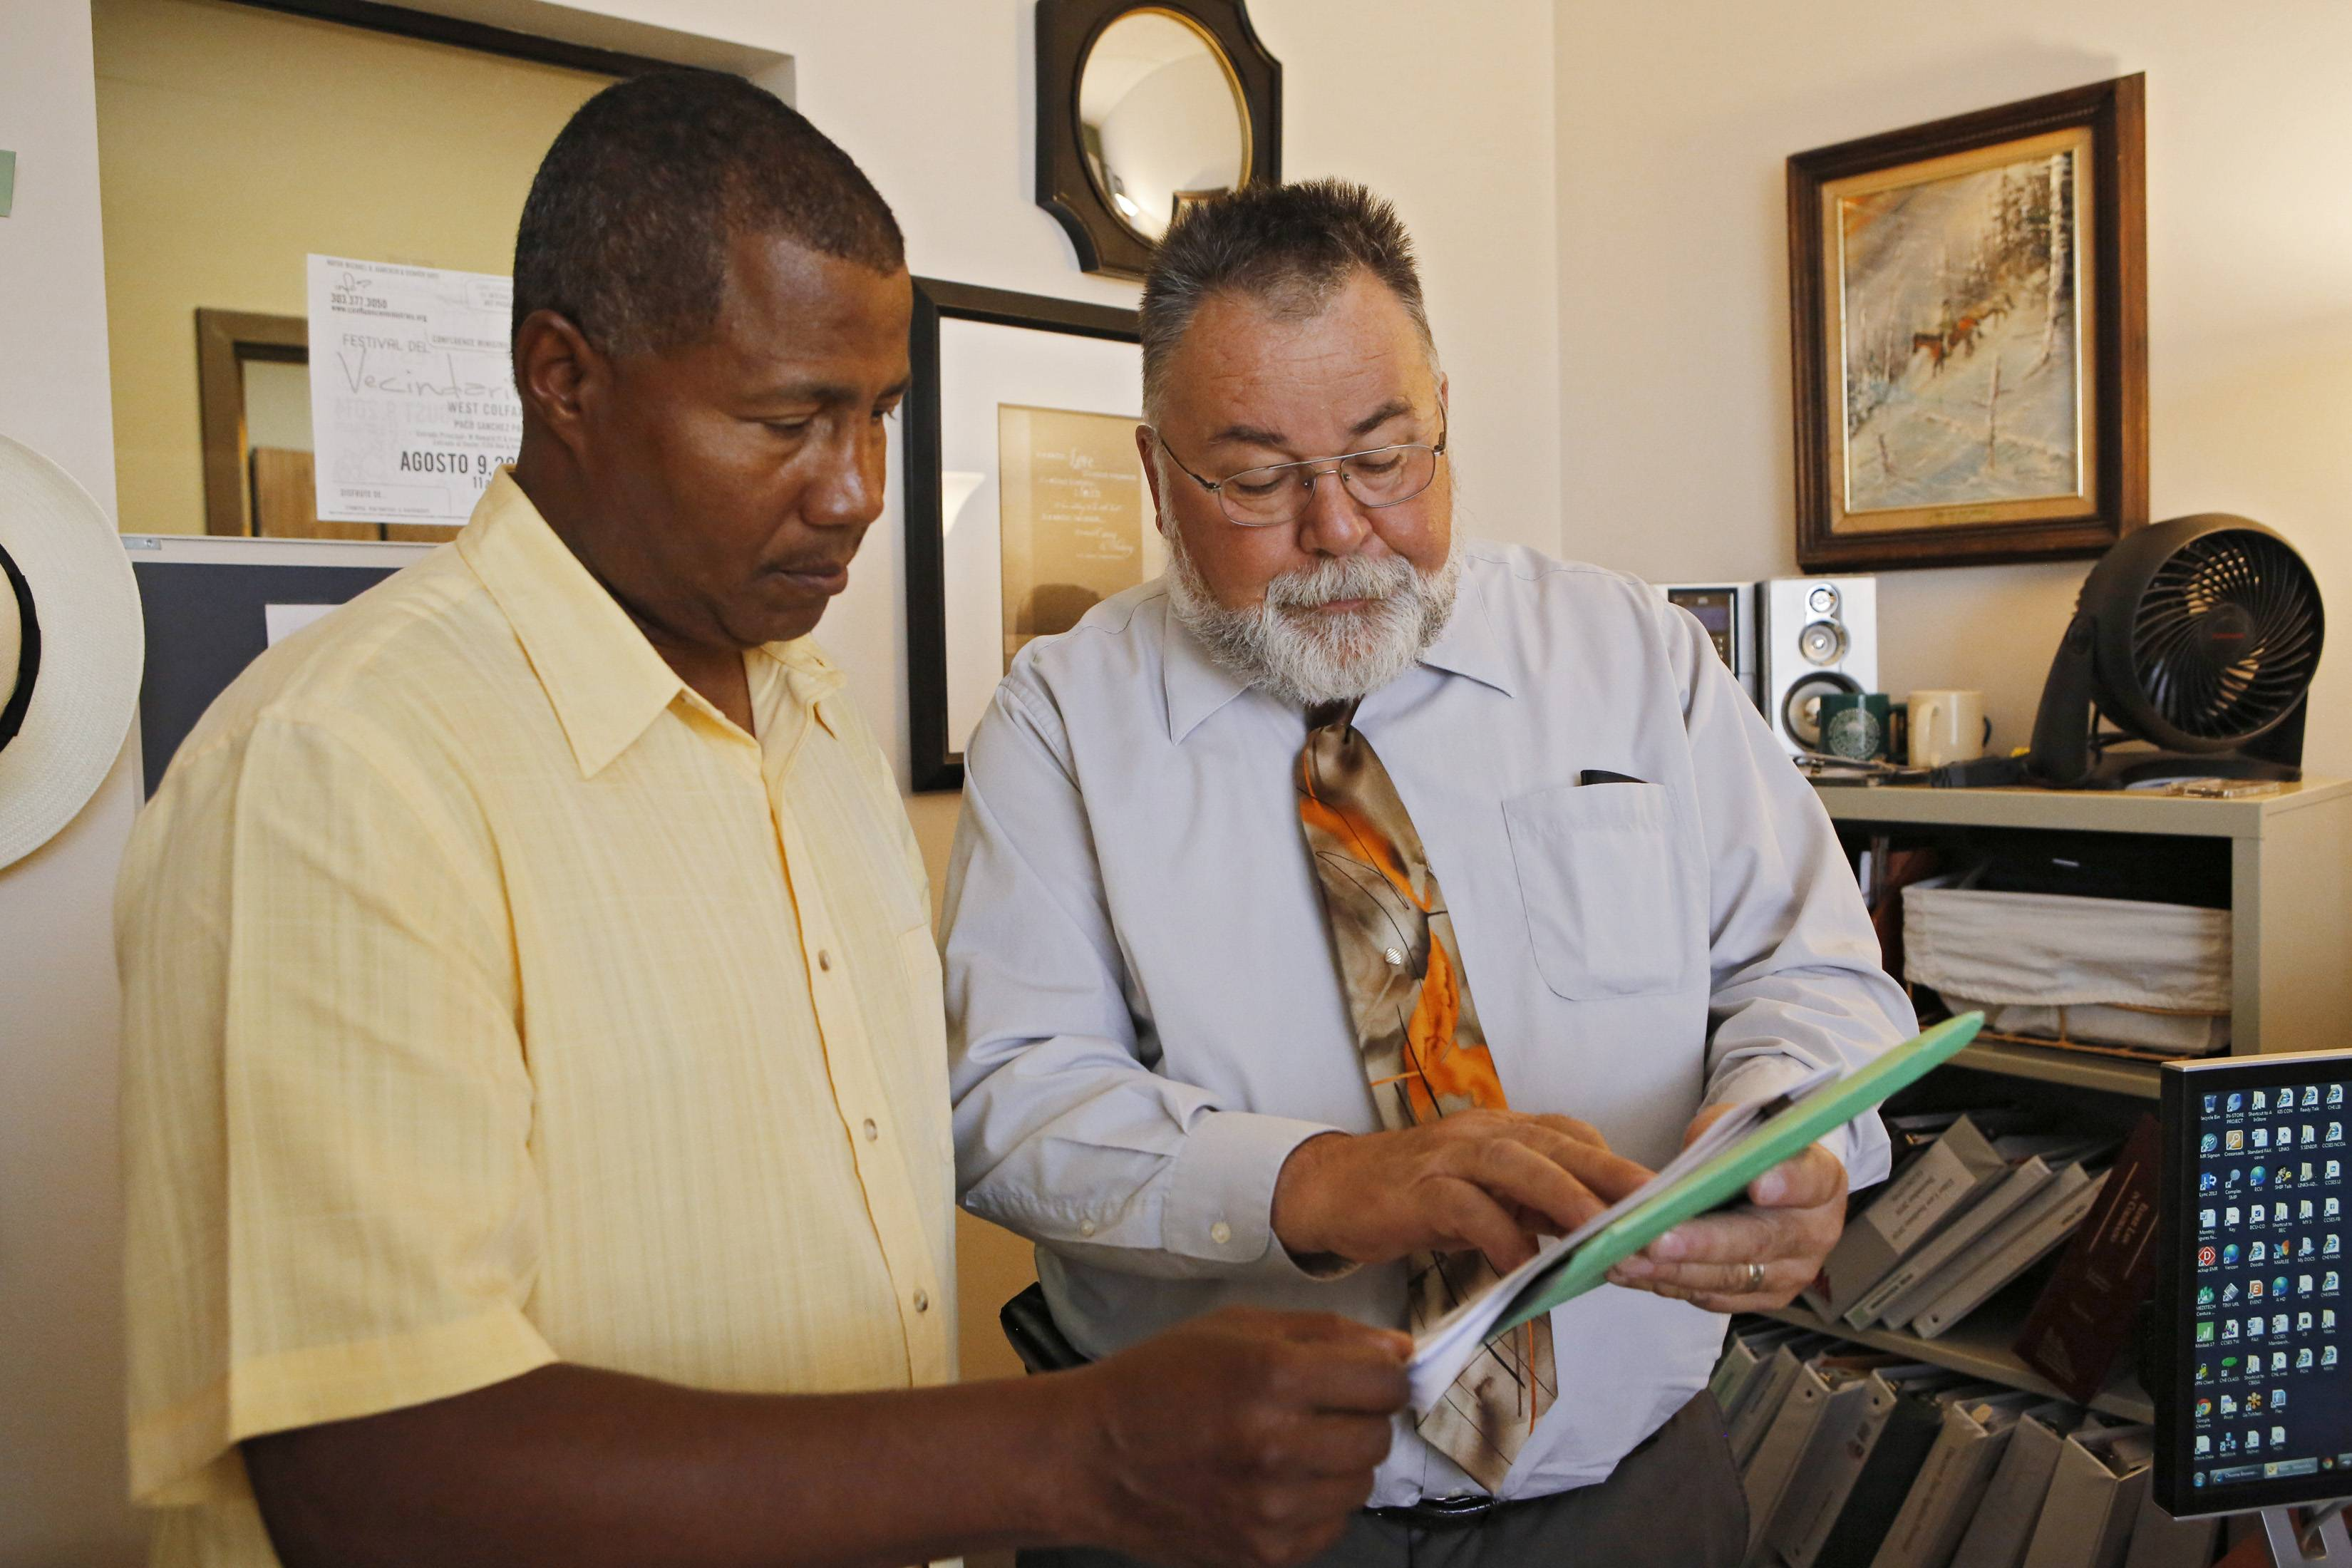 "In this July 8 photo, William Kistler, right, goes over a clients' information with support specialist Ronald Smith at Kistler's office in Denver. Sixty-three-year-old Kistler views retirement like someone tied to the tracks watching a train coming: It's looming, it's threatening and there's little he can do.""There is not enough to retire with,"" said Kistler, a Golden, Colorado, resident who said he is unable to build up a nest egg for his wife with his modest salary helping seniors navigate benefits. ""It's completely frightening to tell you the truth. And I, like a lot of people, try not to think about it too much, which is actually a problem."""